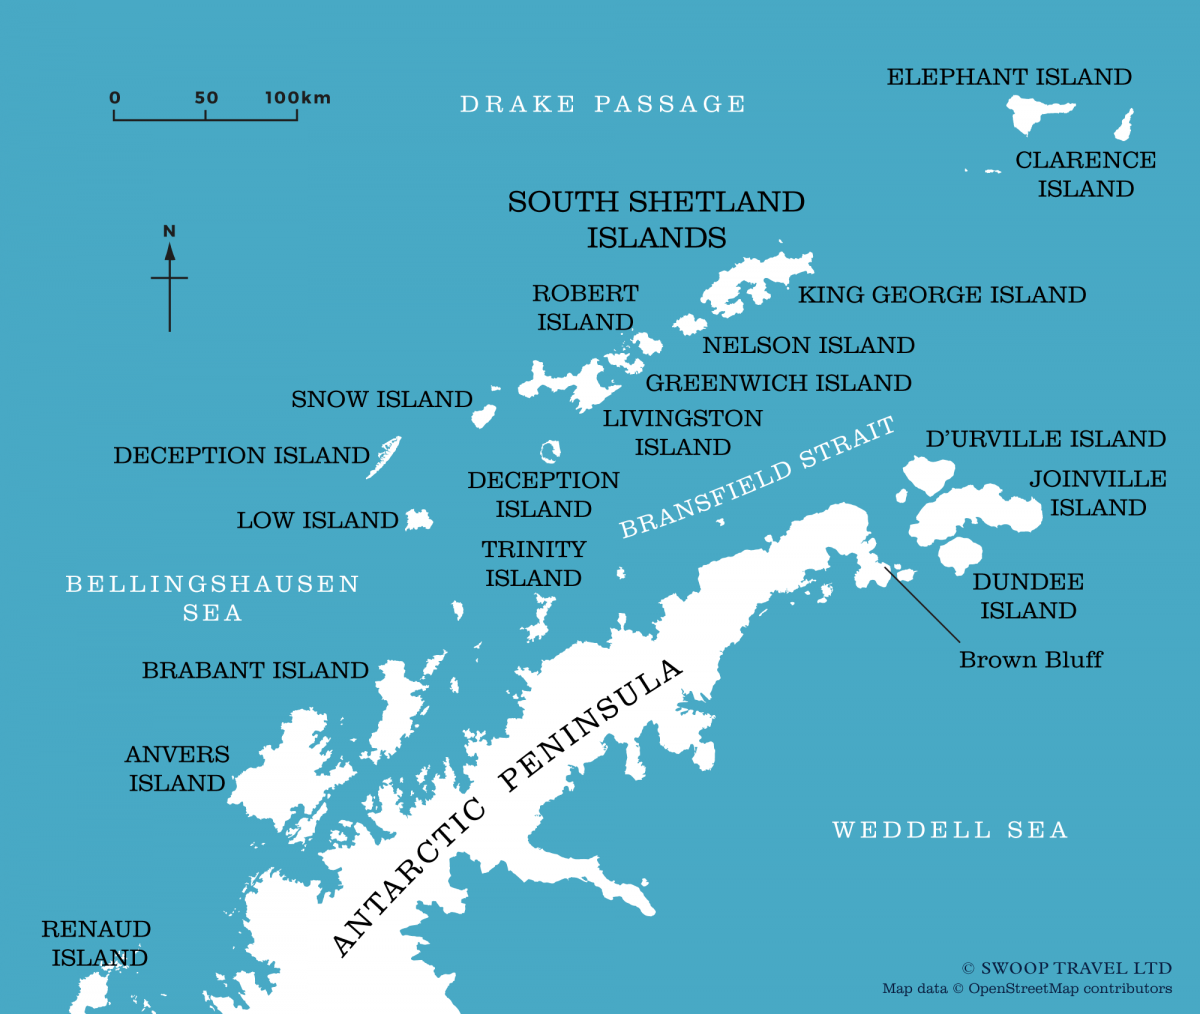 SWO_3_MAP_ALL_ANTARCTICPENINSULA